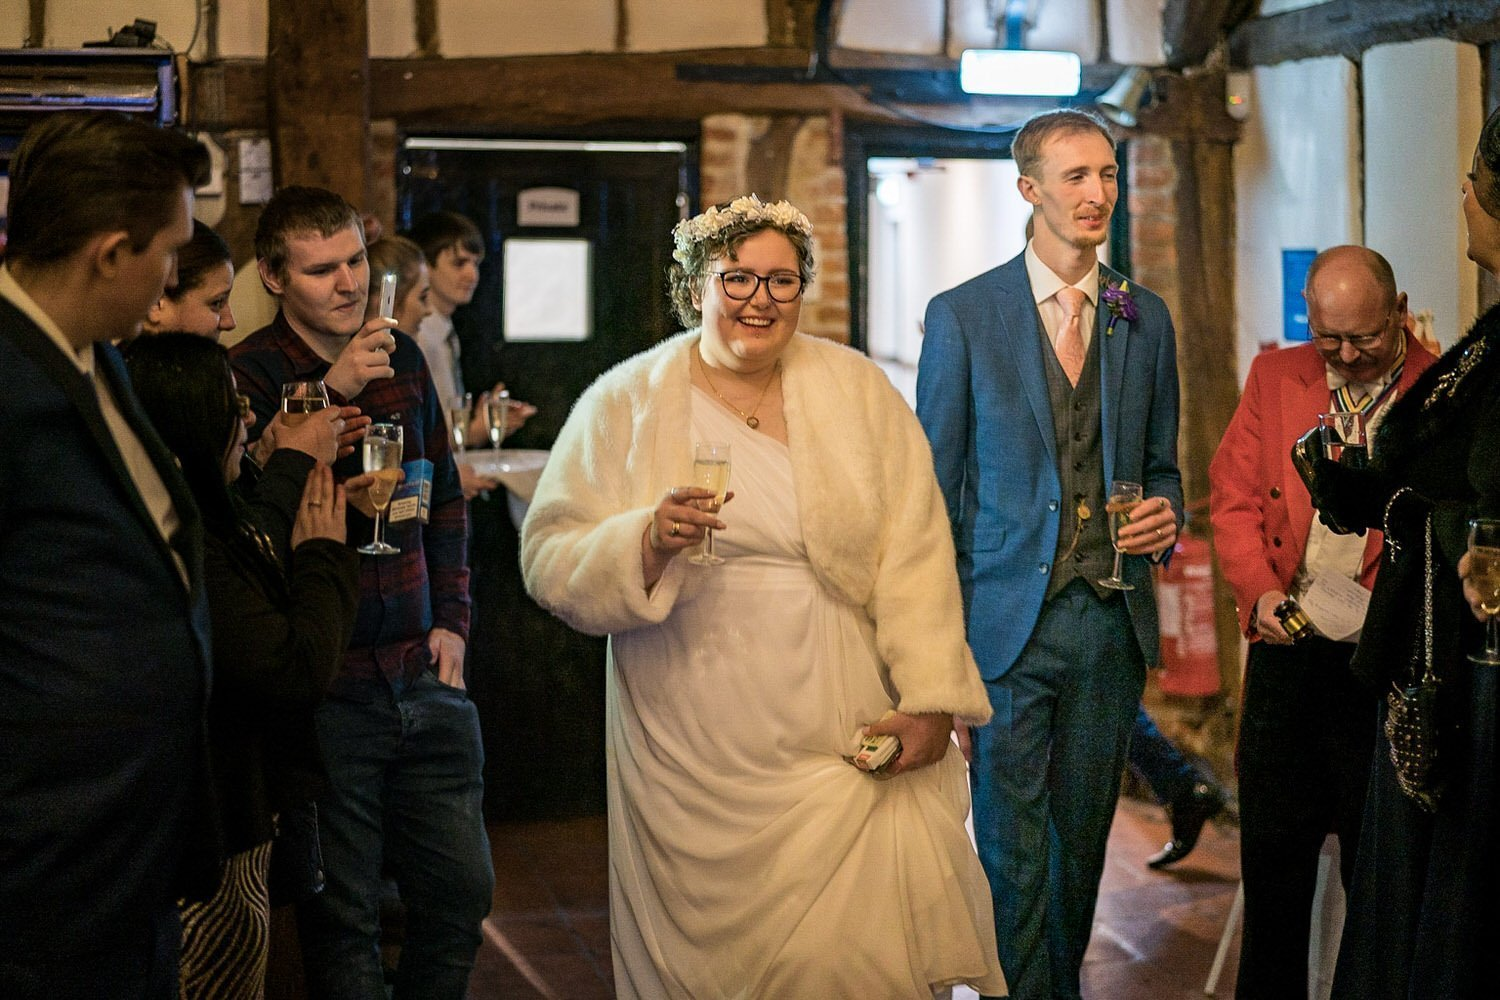 The Barns Hotel Bedford Wooten Weddings Photography Bride and groom arriving to their evening ceremony with glasses of champagne in hand